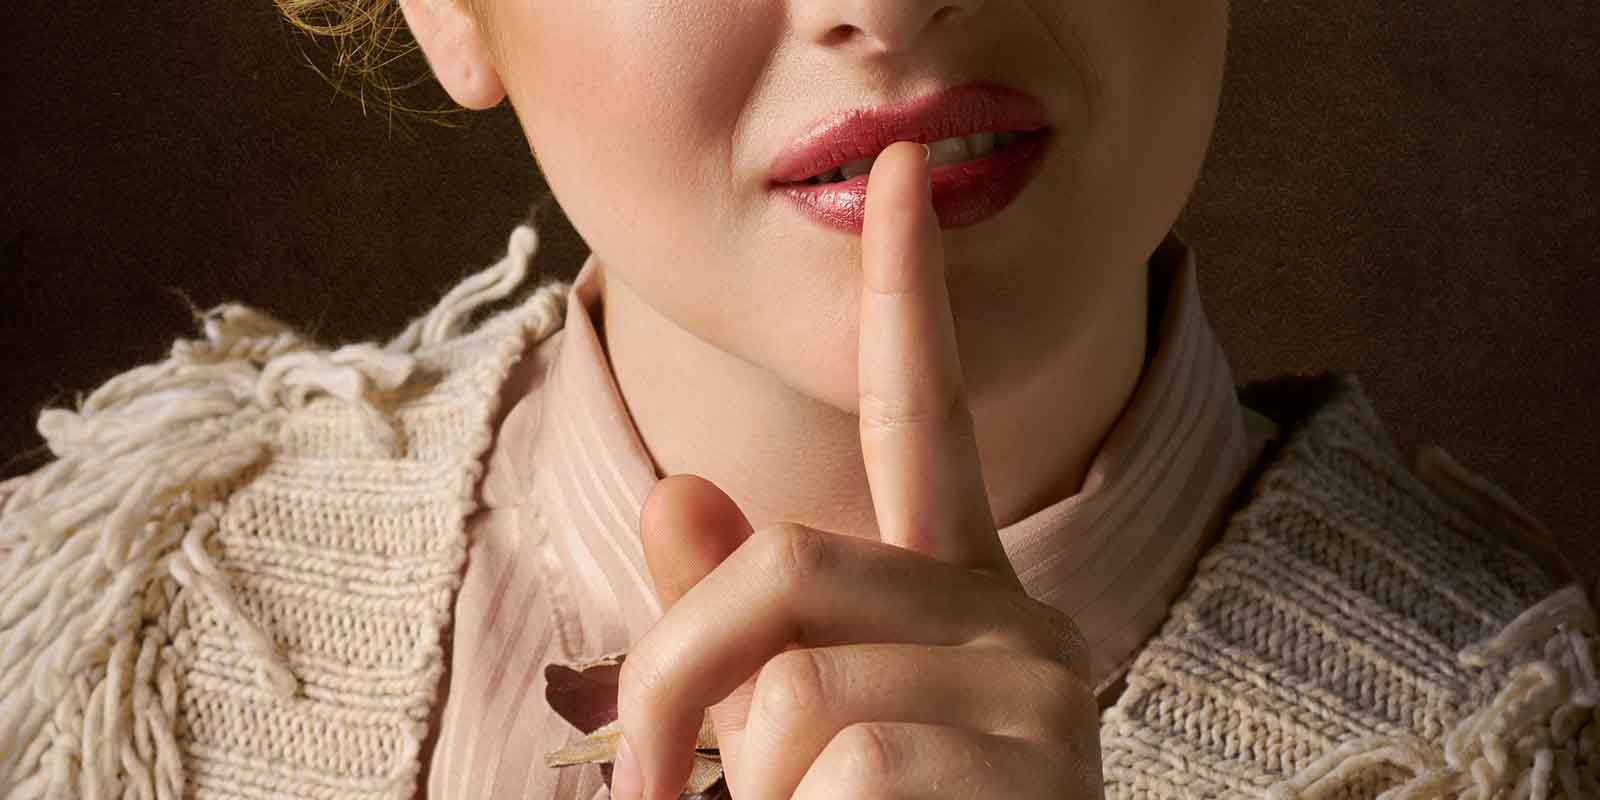 woman with fingers on her lips in a classic shush position